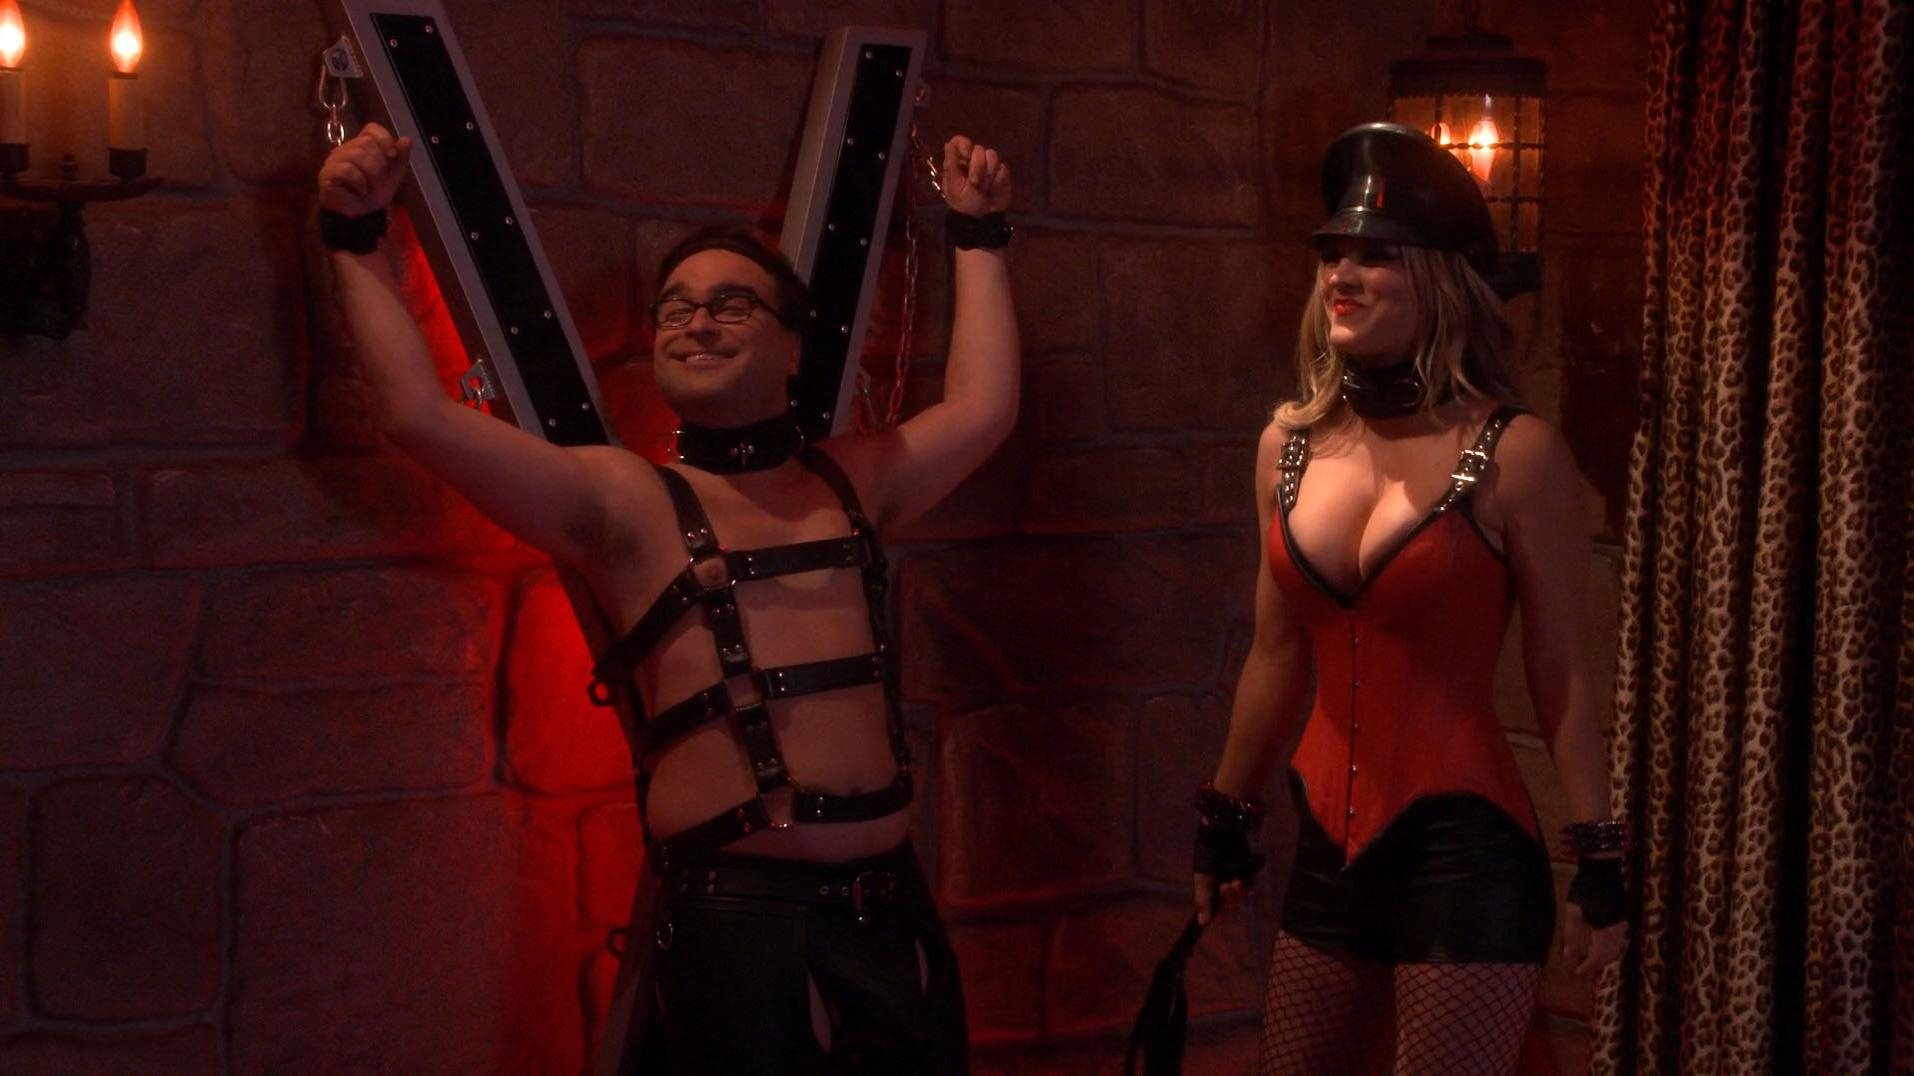 Kaley Cuoco sexy - The Big Bang Theory s10e07 (2016)